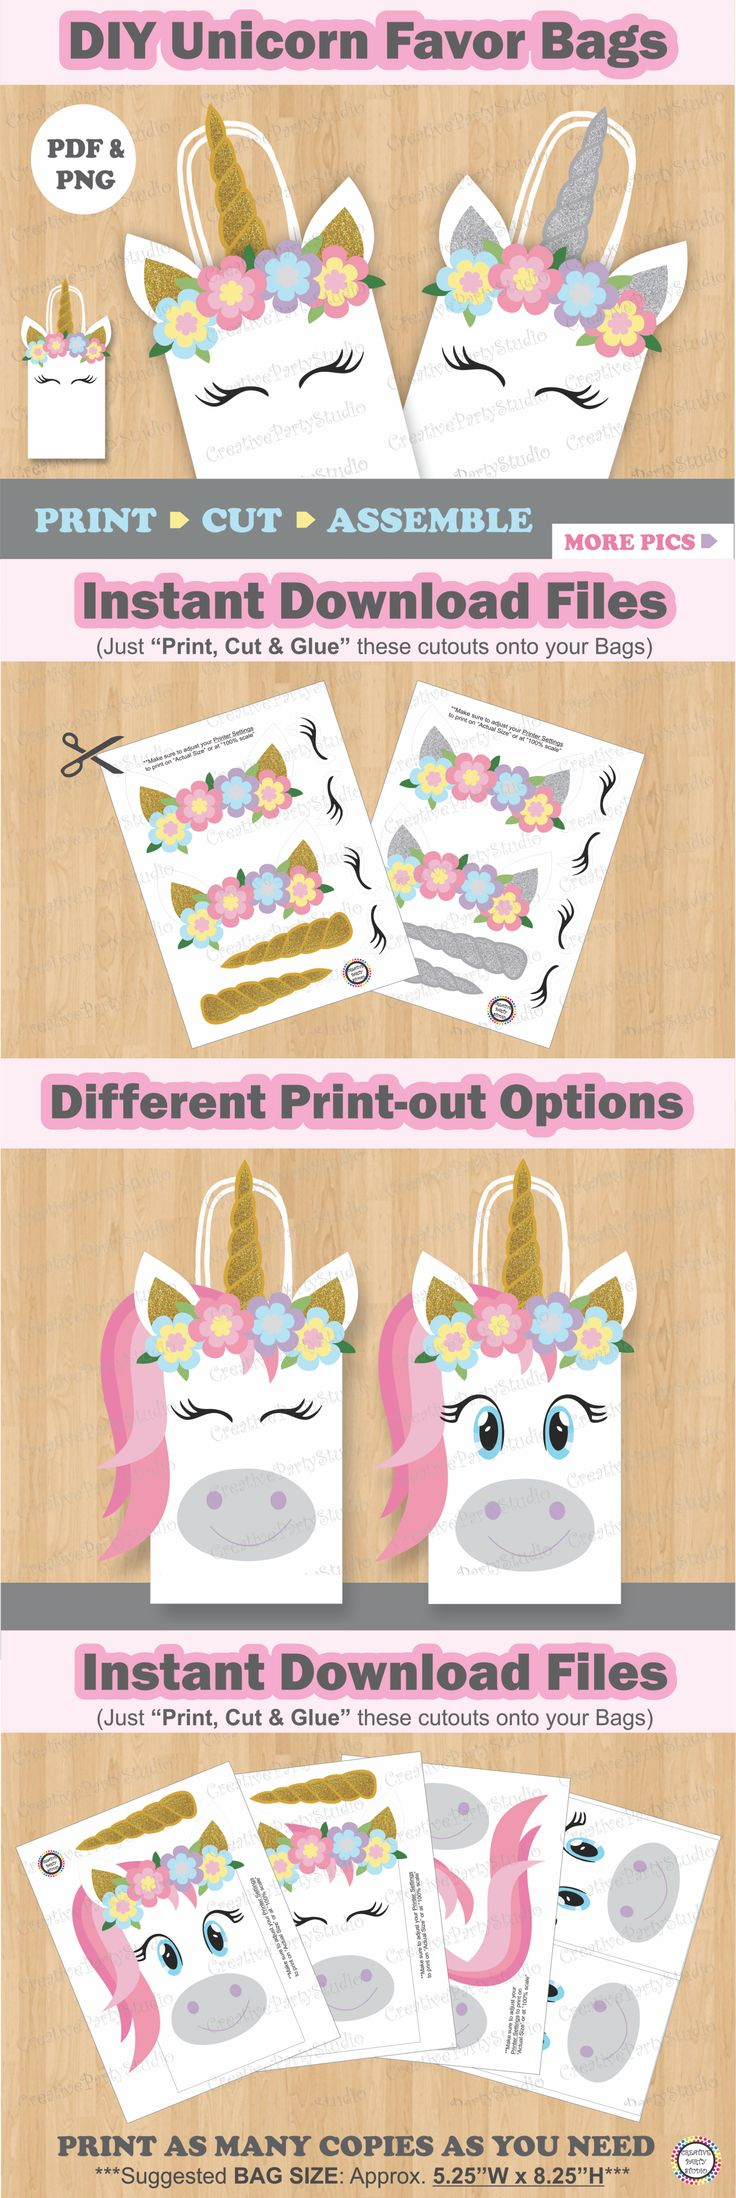 Unicorn Favor Bags/ Unicorn Birthday theme/ Unicorn Birthday Party Ideas/ Unicorn Party theme/ Unicorn birthday Cake/ Unicorn party favors/ Unicorn party decoration/ Unicorn / Unicorn birthday/ Unicorn goodie bags/ unicorn goody bags/ unicorn treat bags/ unicorn paper bags/ diy unicorn party/ unicorn/ unicorn candy bags/ boxes/ I believe in Unicorns/ unicorn birthday banner/ printable for unicorn party/ free/ unicorn baby shower/ rainbow birthday theme/ pony birthday party theme/ diy unicorn